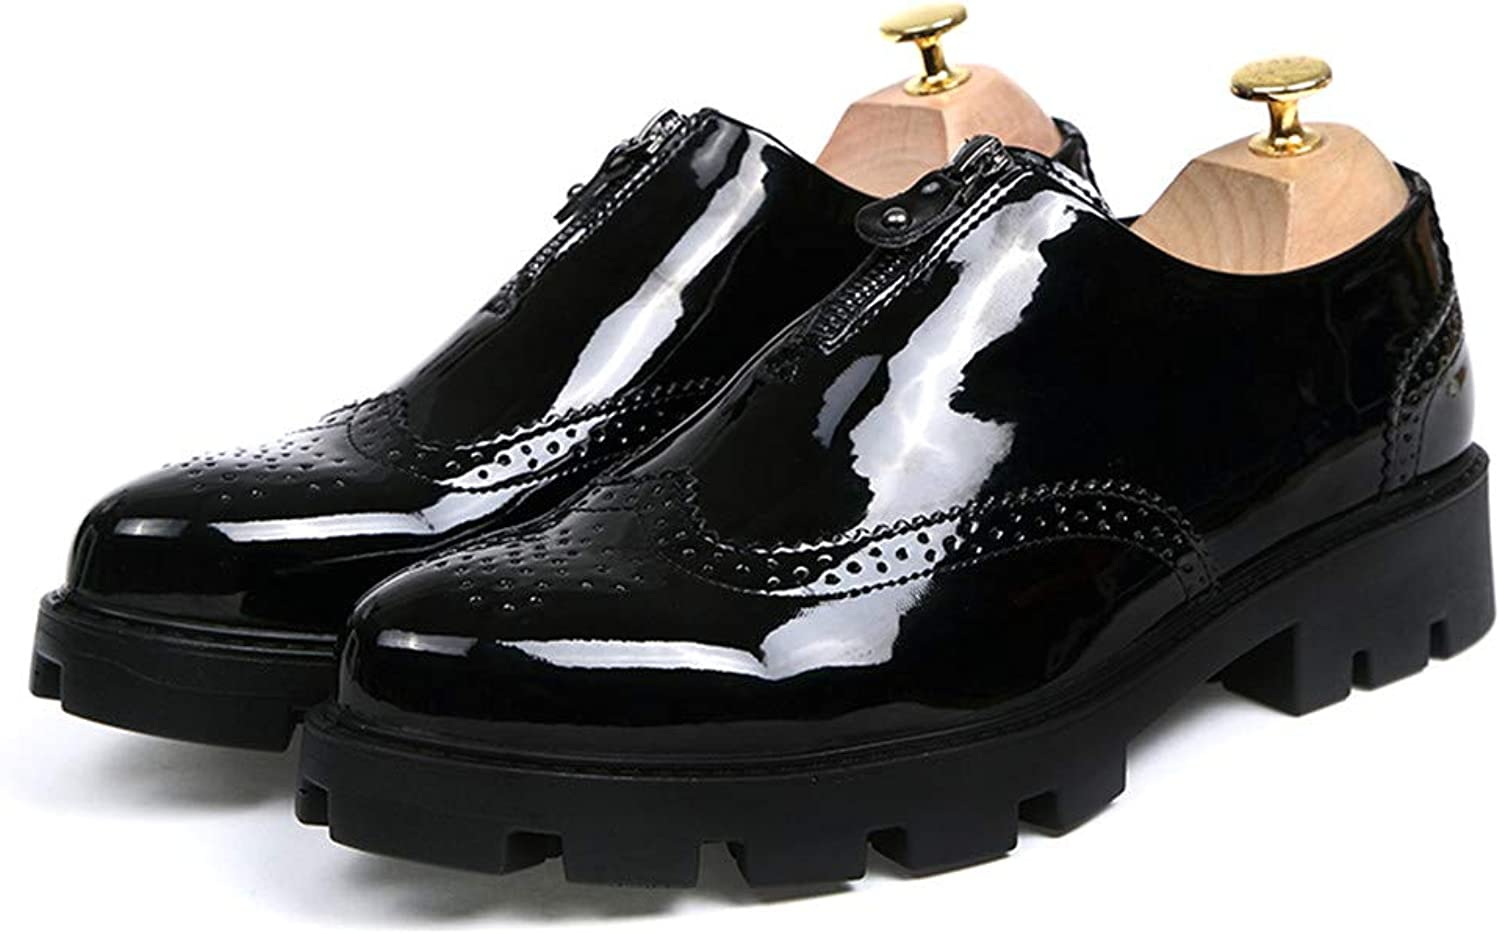 Easy Go Shopping Men's Business Oxford Casual Fashion Classic Height Increasing Insole Rust Zipper Outsole Brogue shoes(patent Leather Optional) Cricket shoes (color   Gloss Black, Size   8 UK)